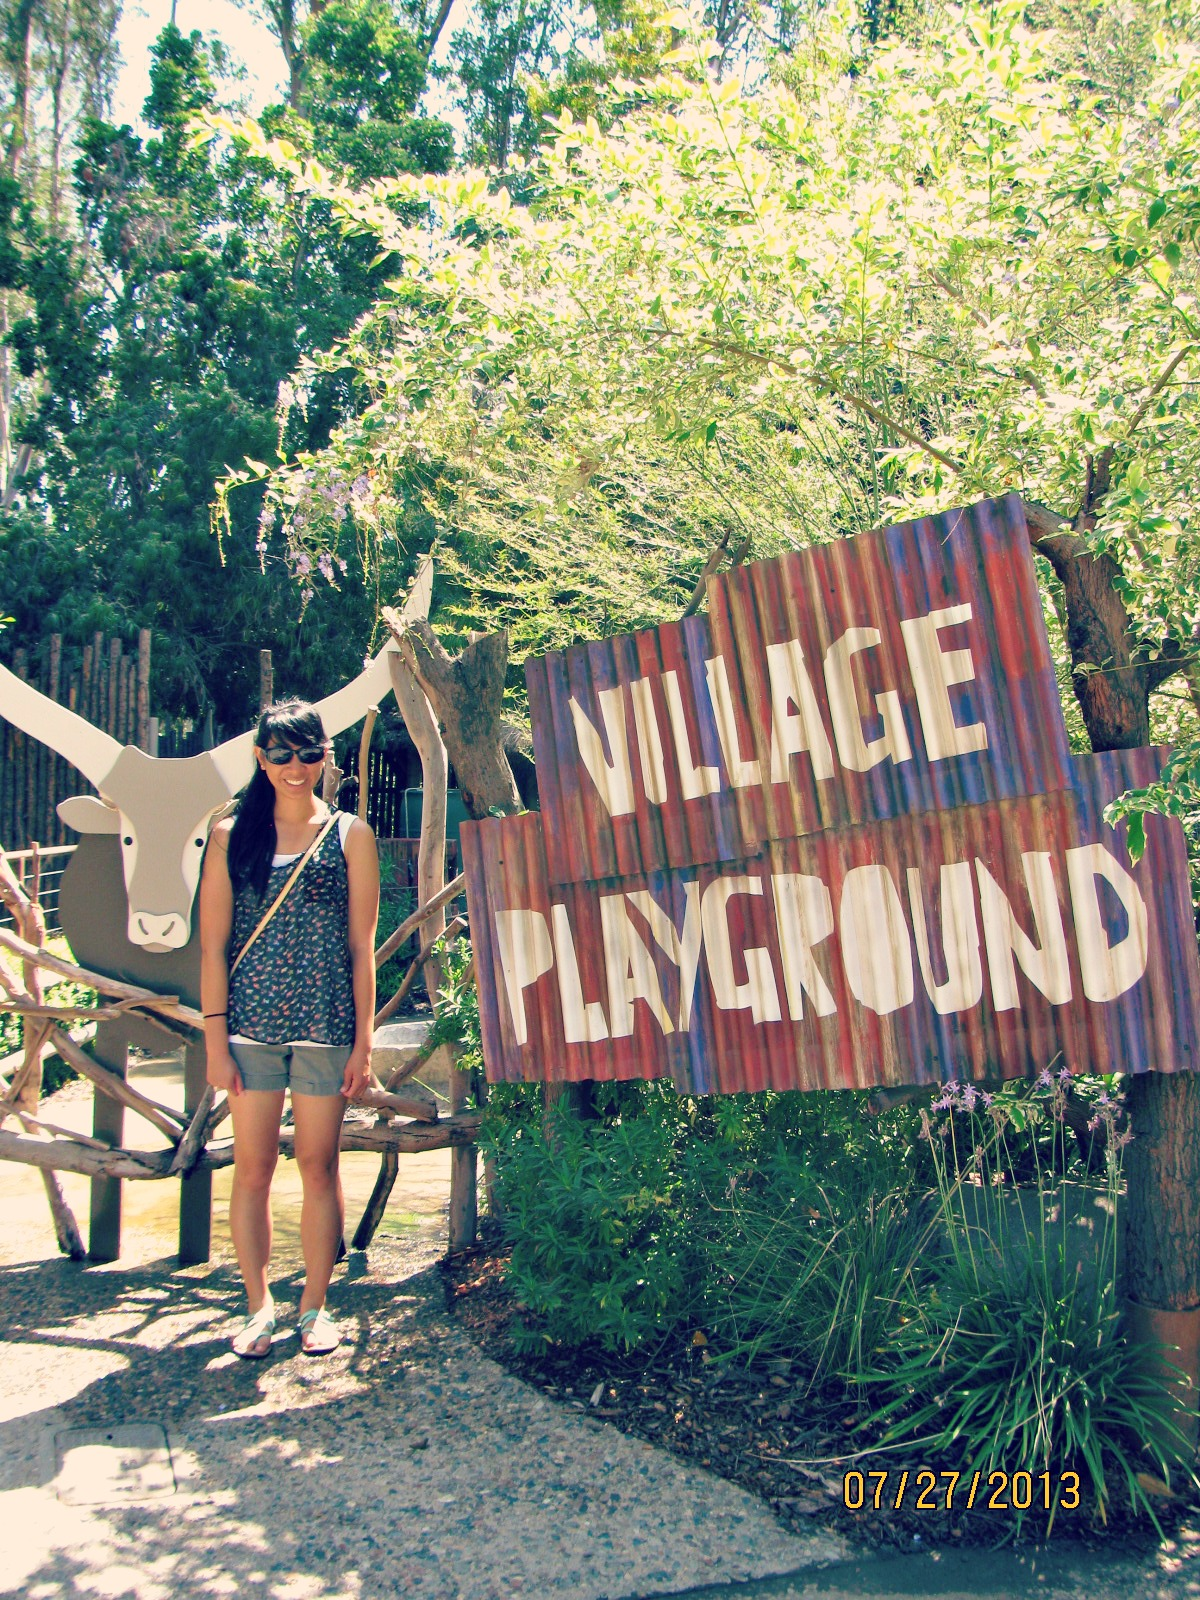 San Diego Safari Park // Village Playground